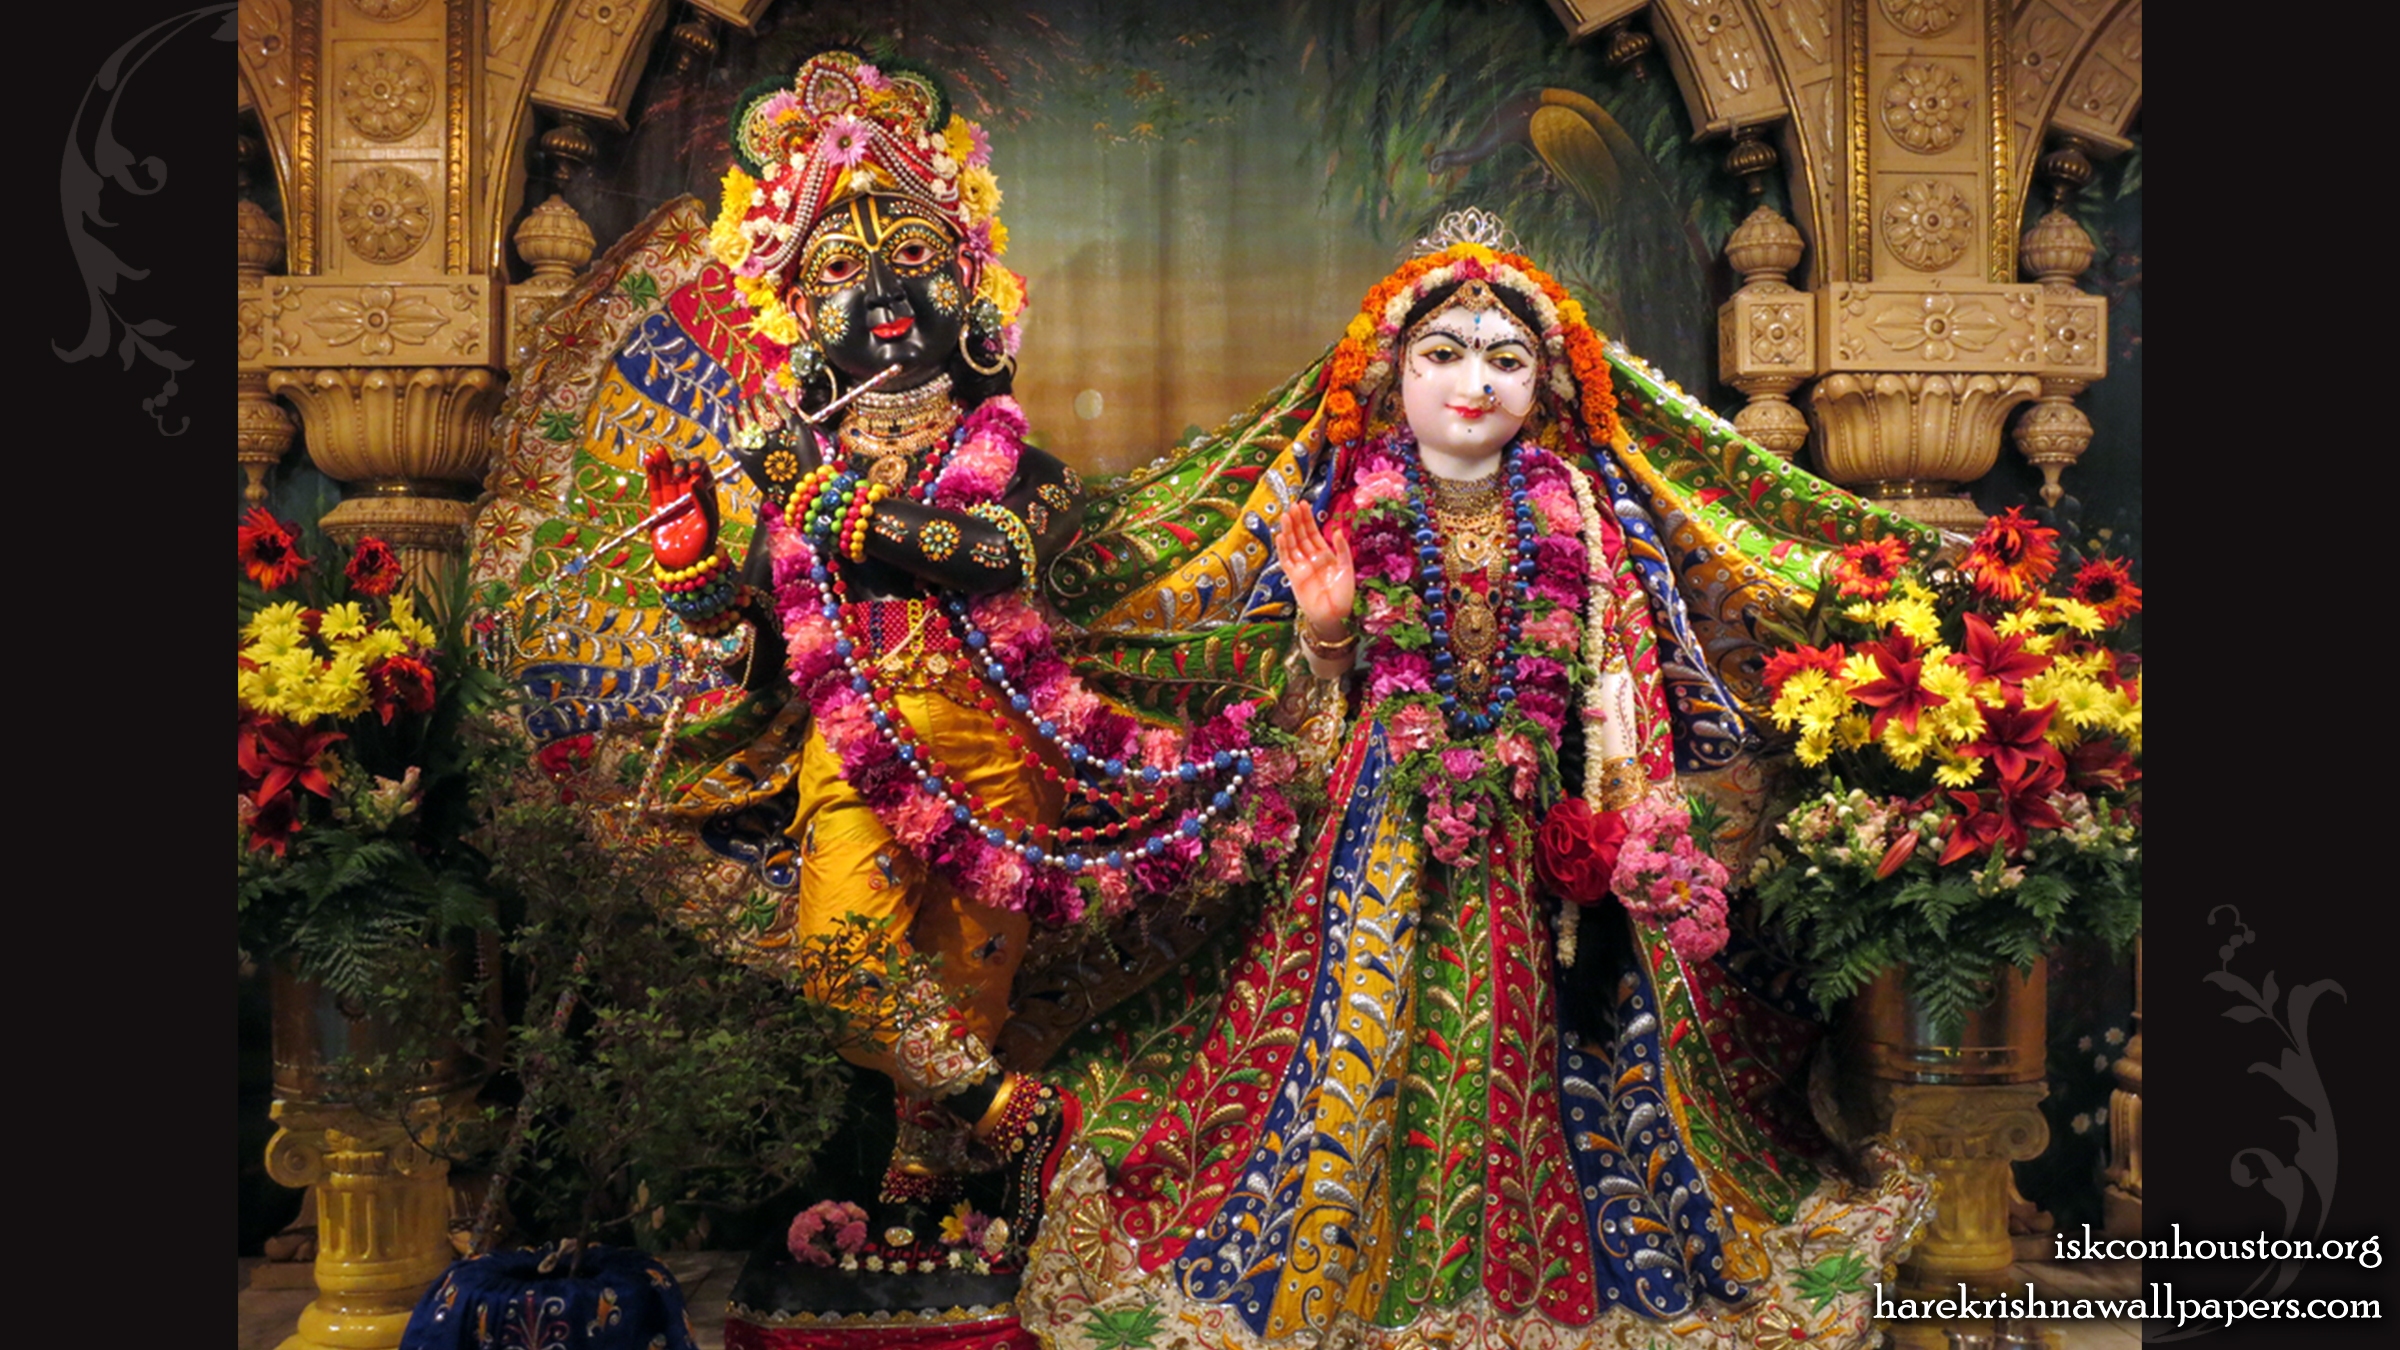 Sri Sri Radha Nilamadhava Wallpaper (010) Size 2400x1350 Download